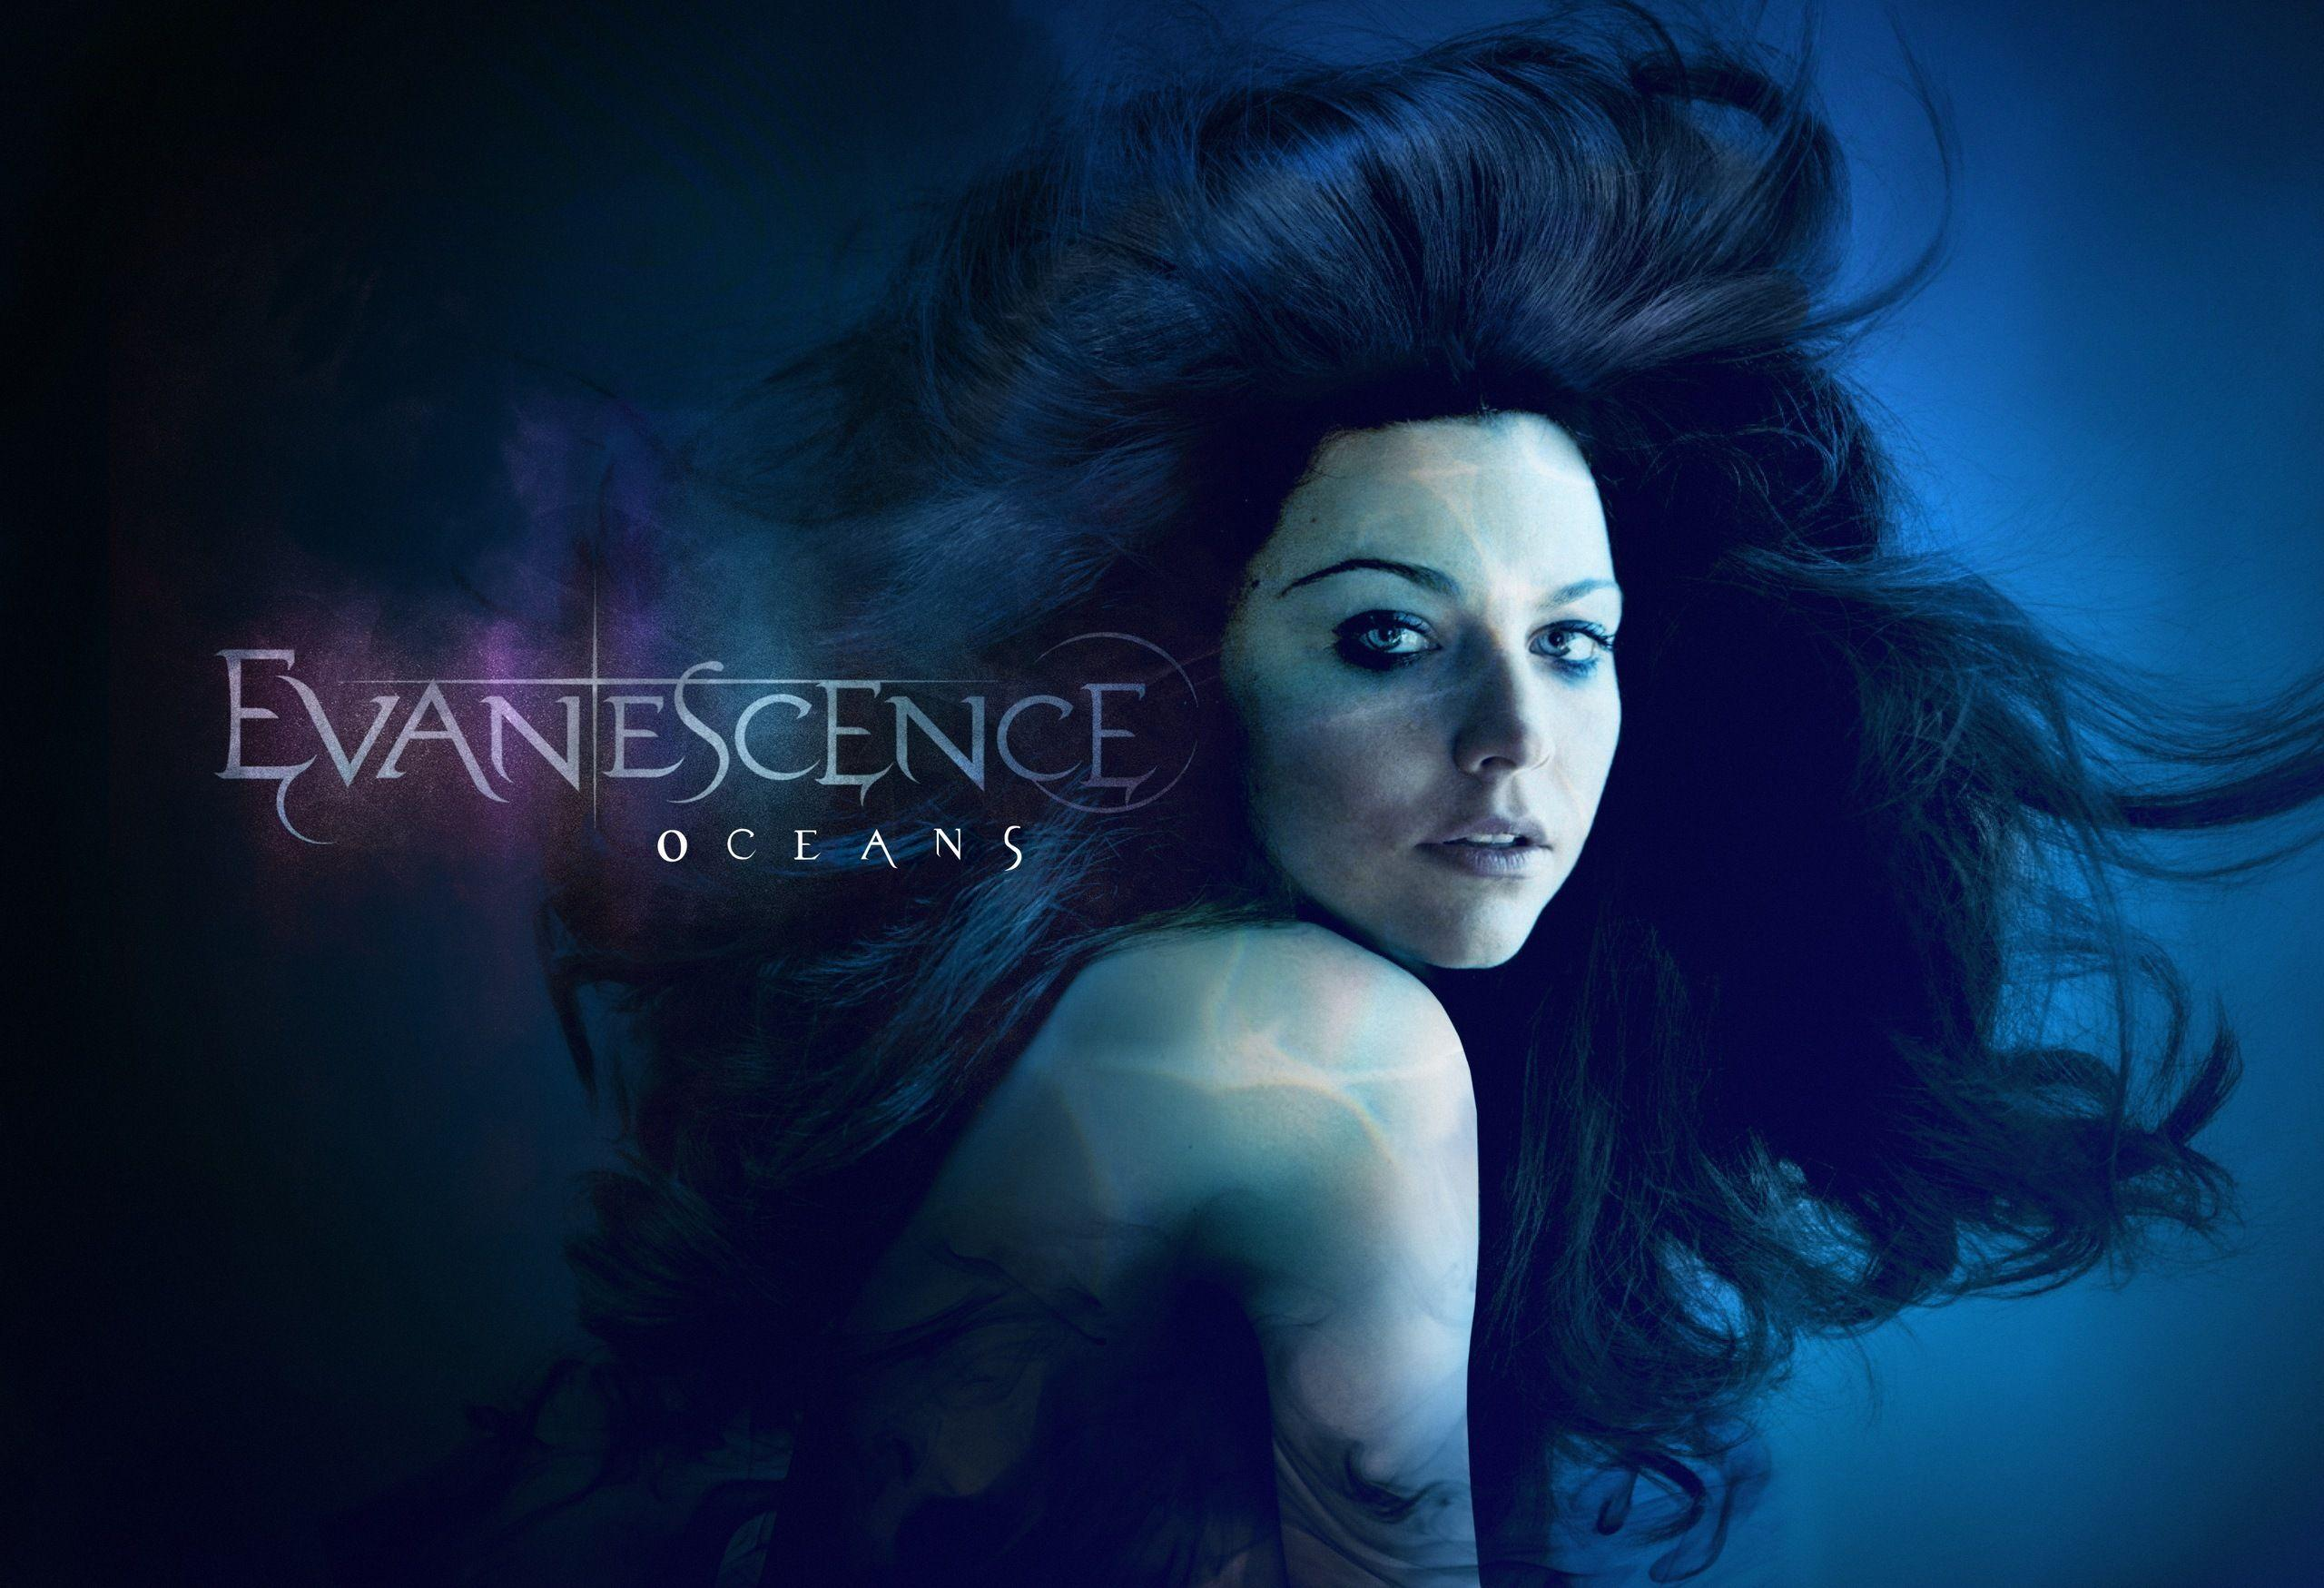 Evanescence Wallpapers 2015 2560x1749